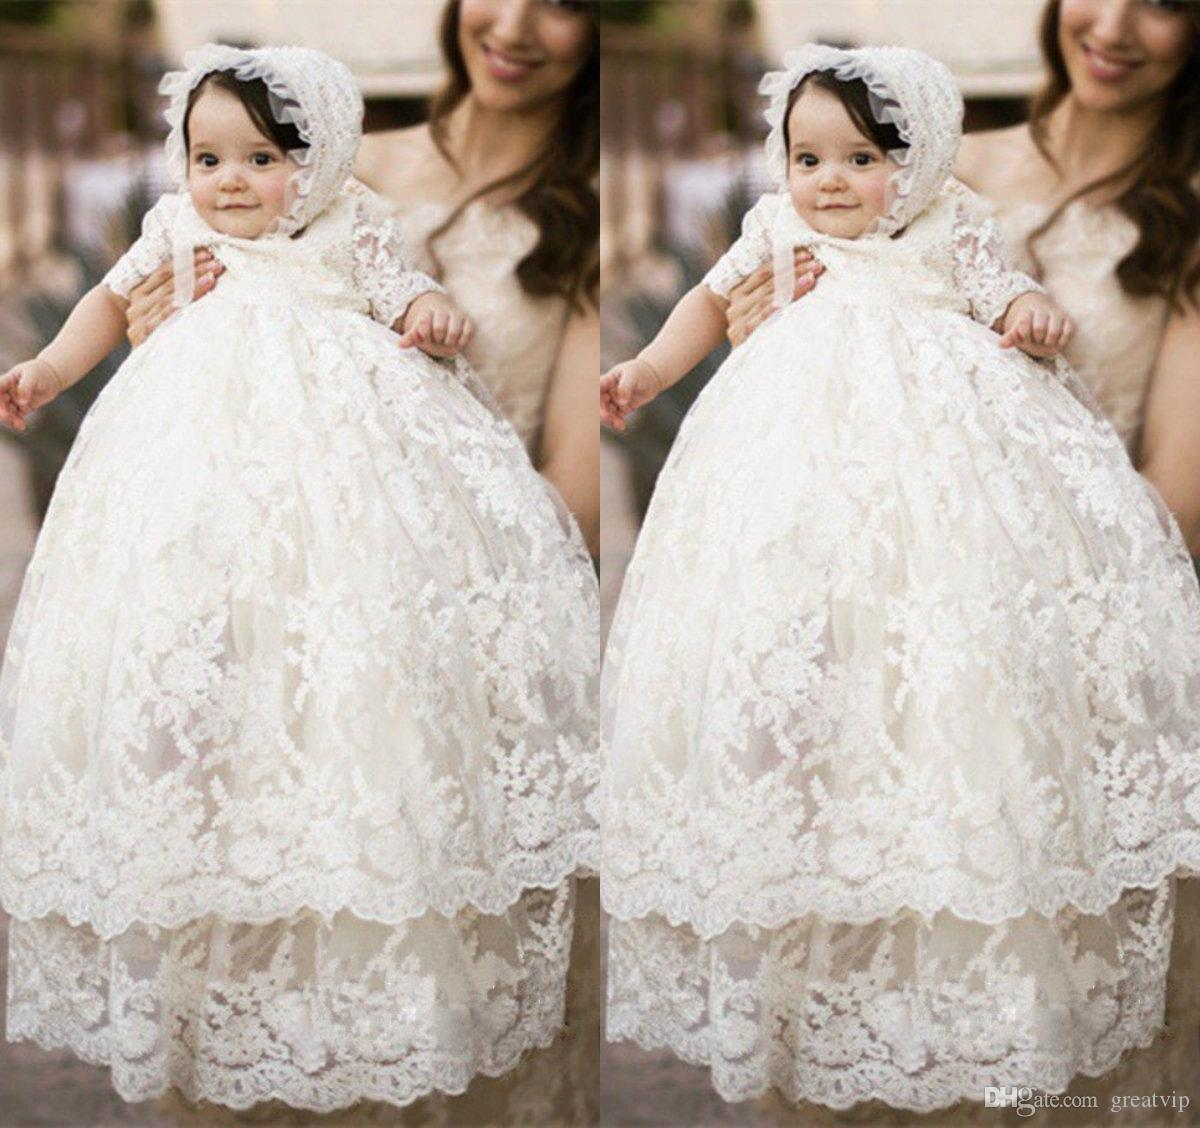 d1a3ef6f93d First Communion Dresses Jewel Two Layer Bow Lace Applique Half Sleeves  Baptism Outfits Formal Infant Girl Wear With Bonnet Baby Boy Christening  Dress Baby ...